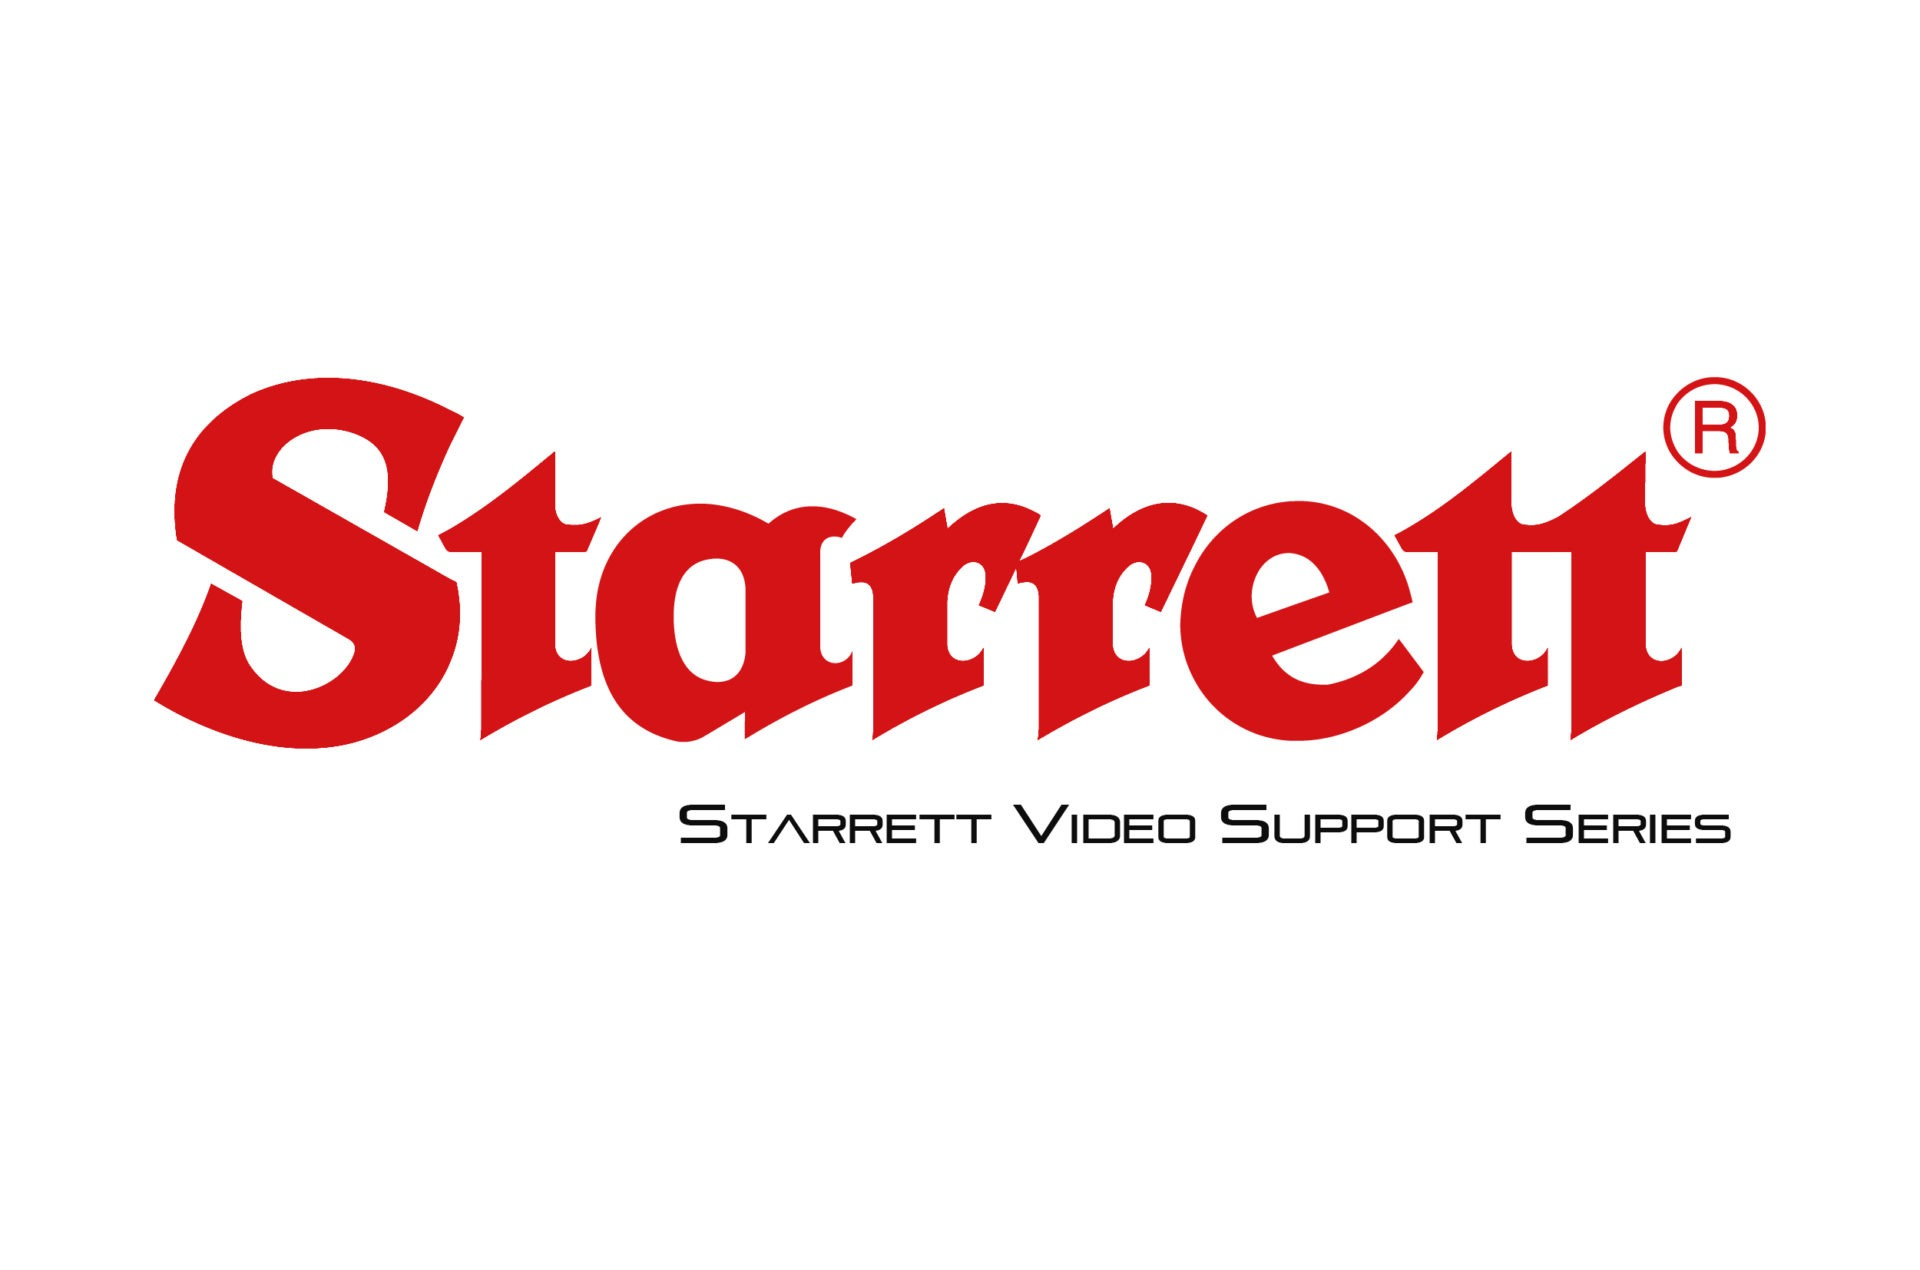 1537, 1537, Starrett Video Support Series, SVSS-Graphic.jpg, 96944, https://starrett-metrology.co.uk/wp-content/uploads/2020/07/SVSS-Graphic.jpg, https://starrett-metrology.co.uk/starrett-syringe-force-testing-push-pull-test/svss-graphic/, Starrett Video Suport Series, 5, , , svss-graphic, inherit, 1531, 2020-07-22 07:50:43, 2020-09-23 08:48:18, 0, image/jpeg, image, jpeg, https://starrett-metrology.co.uk/wp-includes/images/media/default.png, 1920, 1270, Array